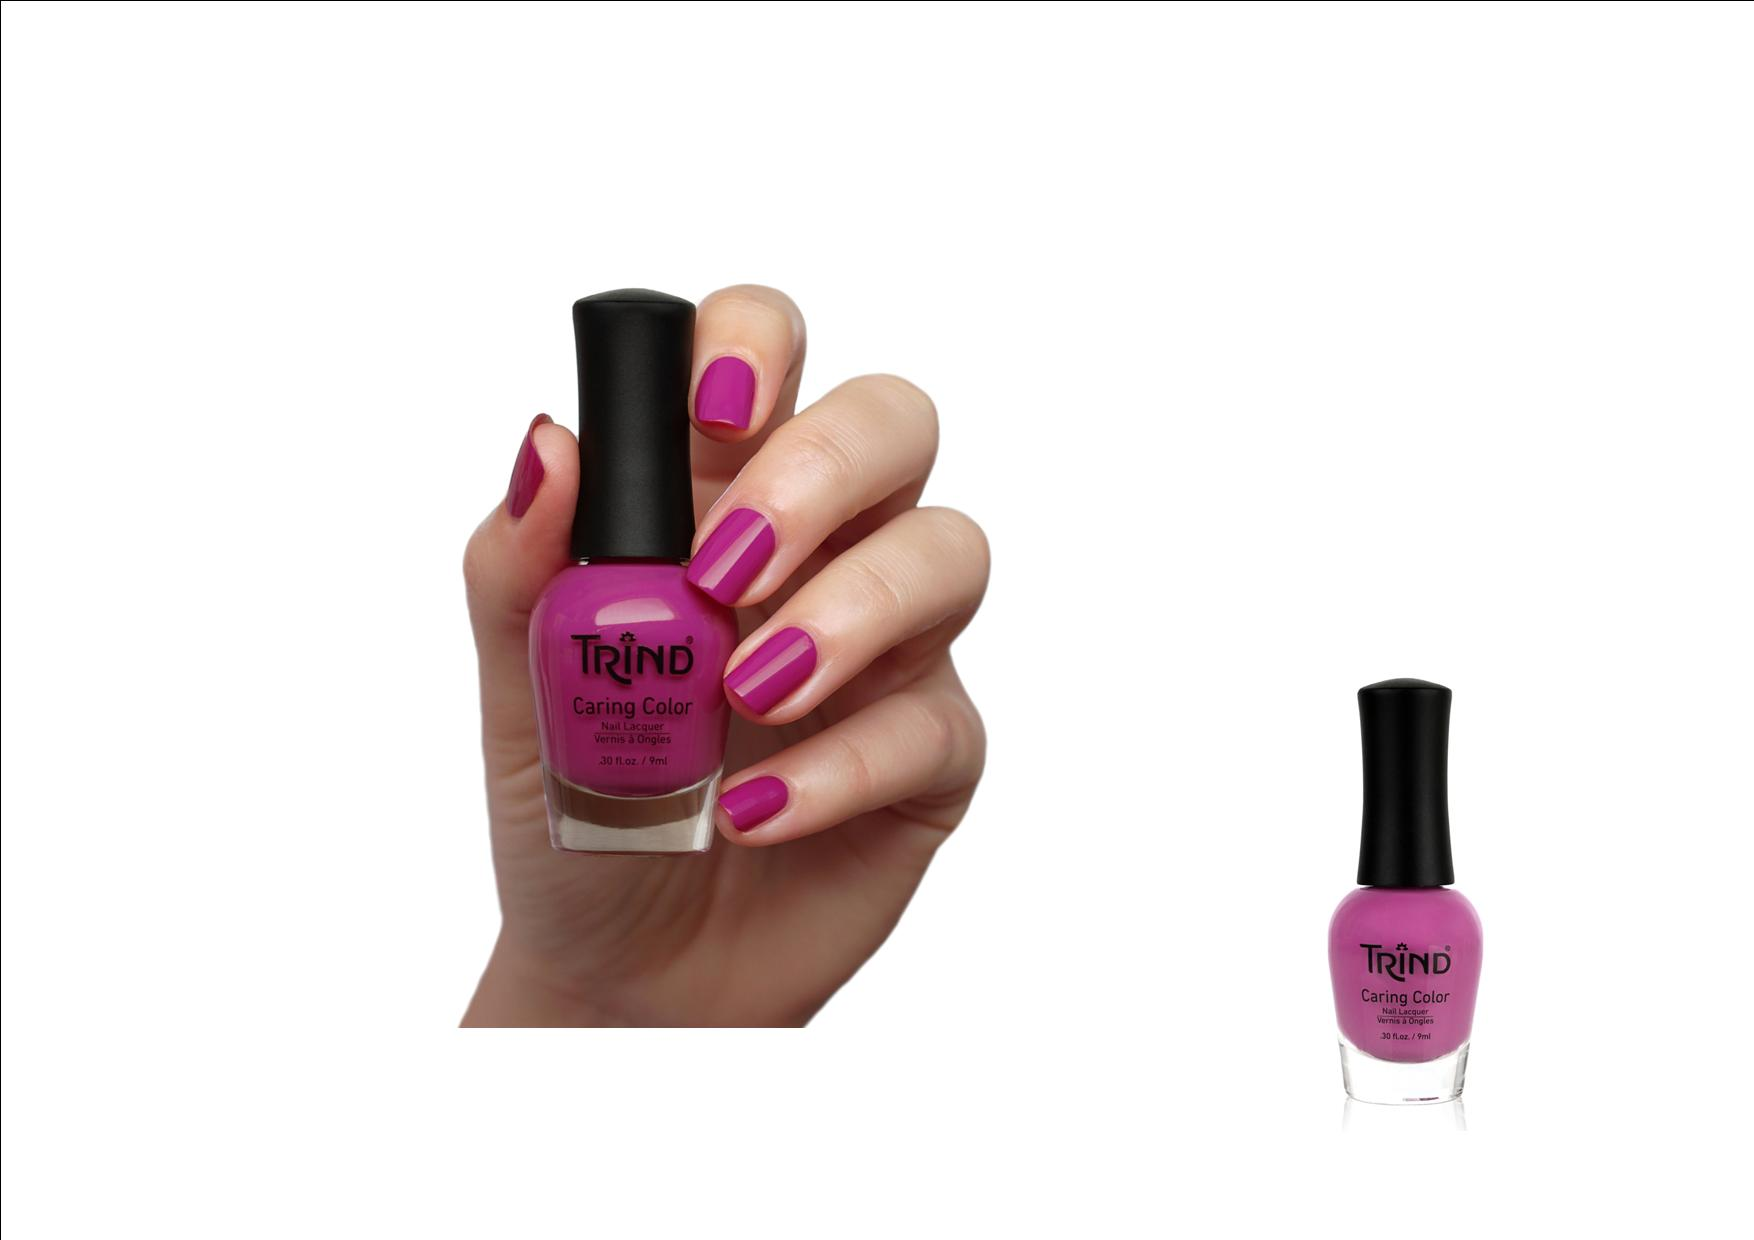 Trind Caring Color Nagellak 268 Citified Cyclamen